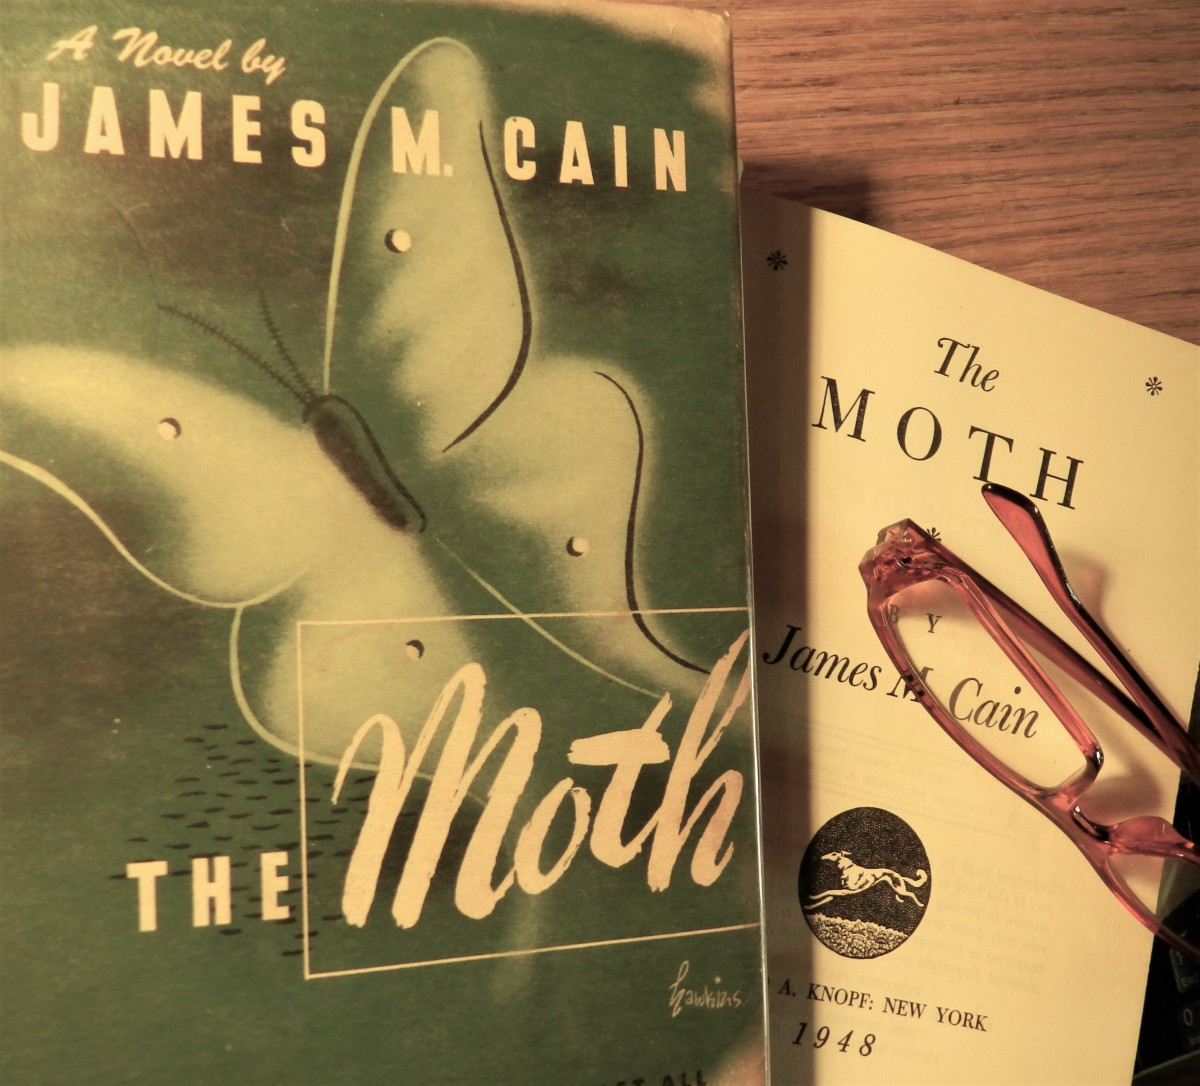 The Moth by James M Cain